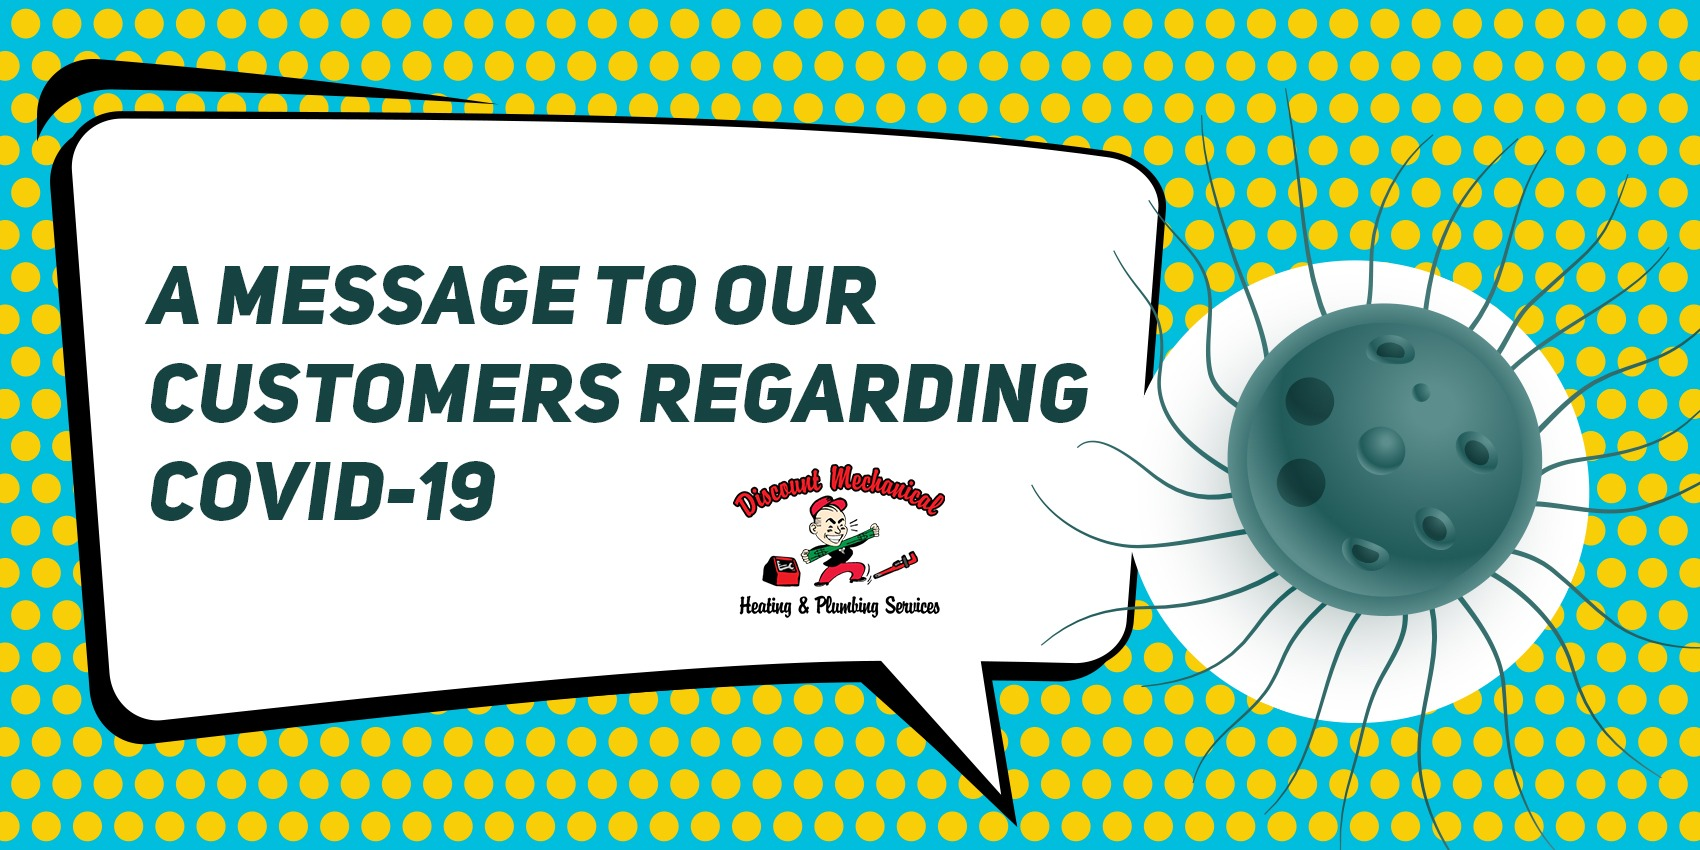 A MESSAGE TO OUR CUSTOMERS REGARDING COVID-19